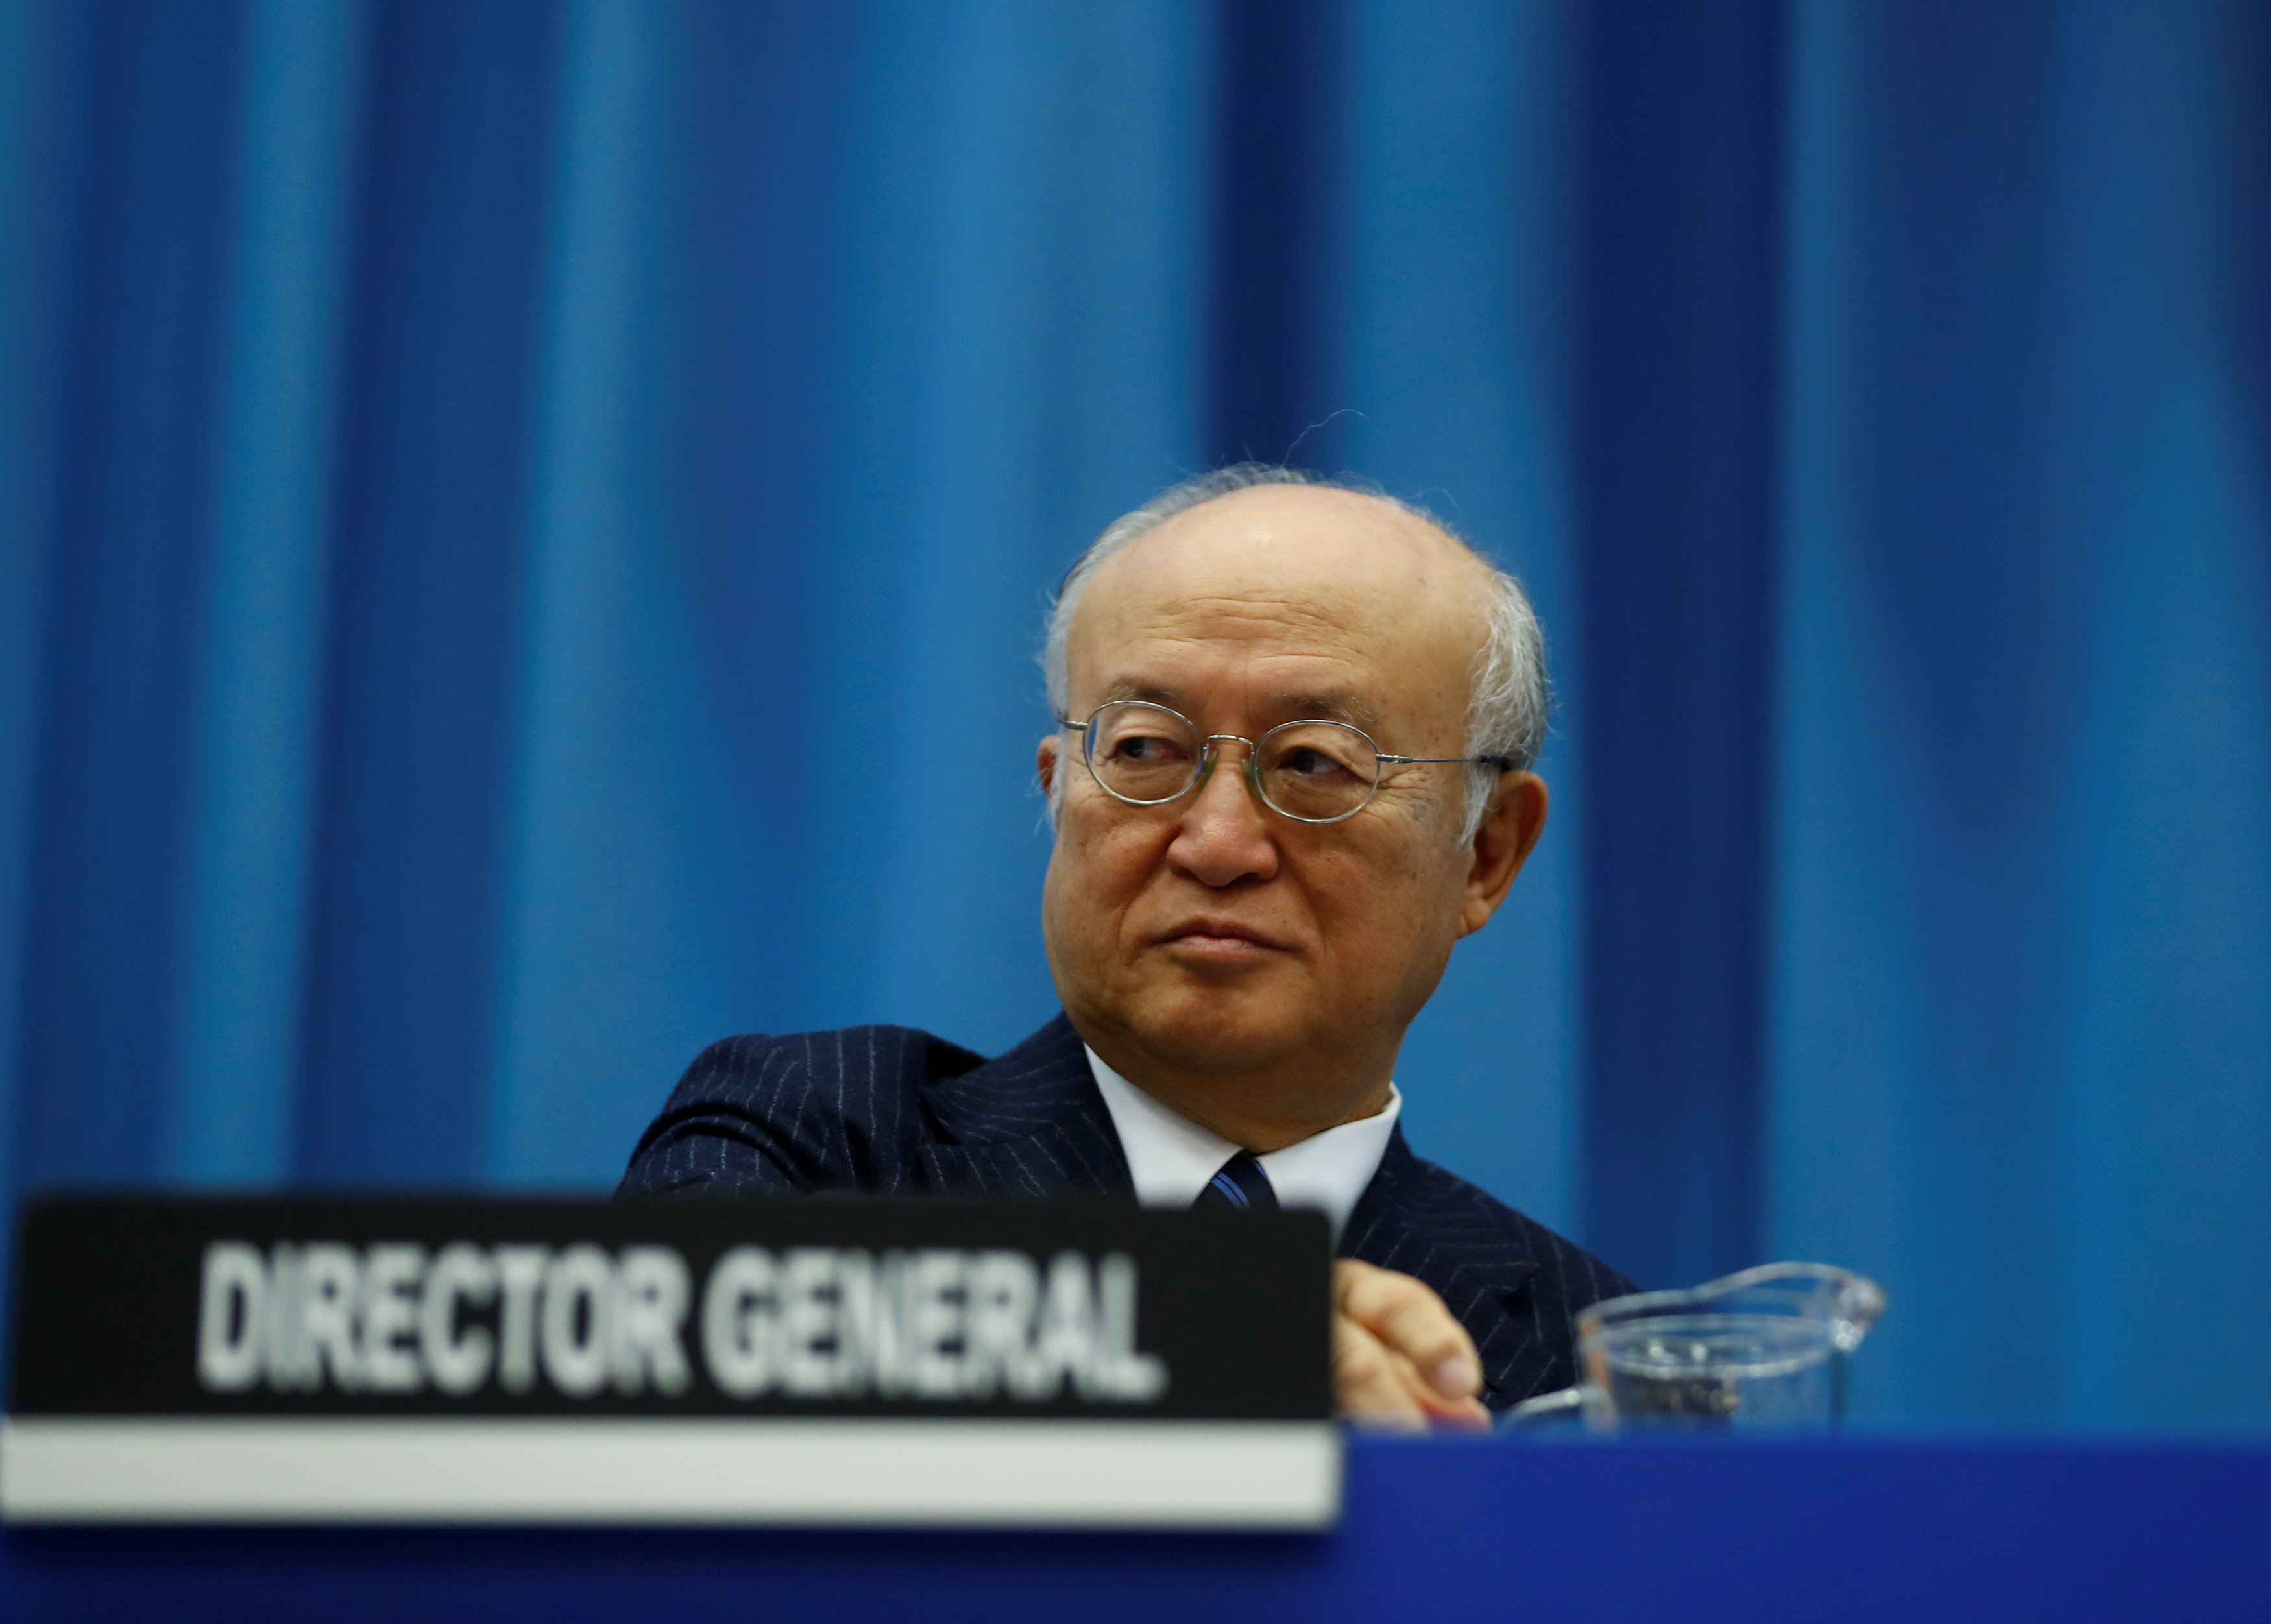 International Atomic Energy Agency (IAEA) Director General Yukiya Amano attends the opening of the General Conference at the IAEA headquarters in Vienna, Austria on Sept. 18, 2017. (REUTERS/Leonhard Foeger)